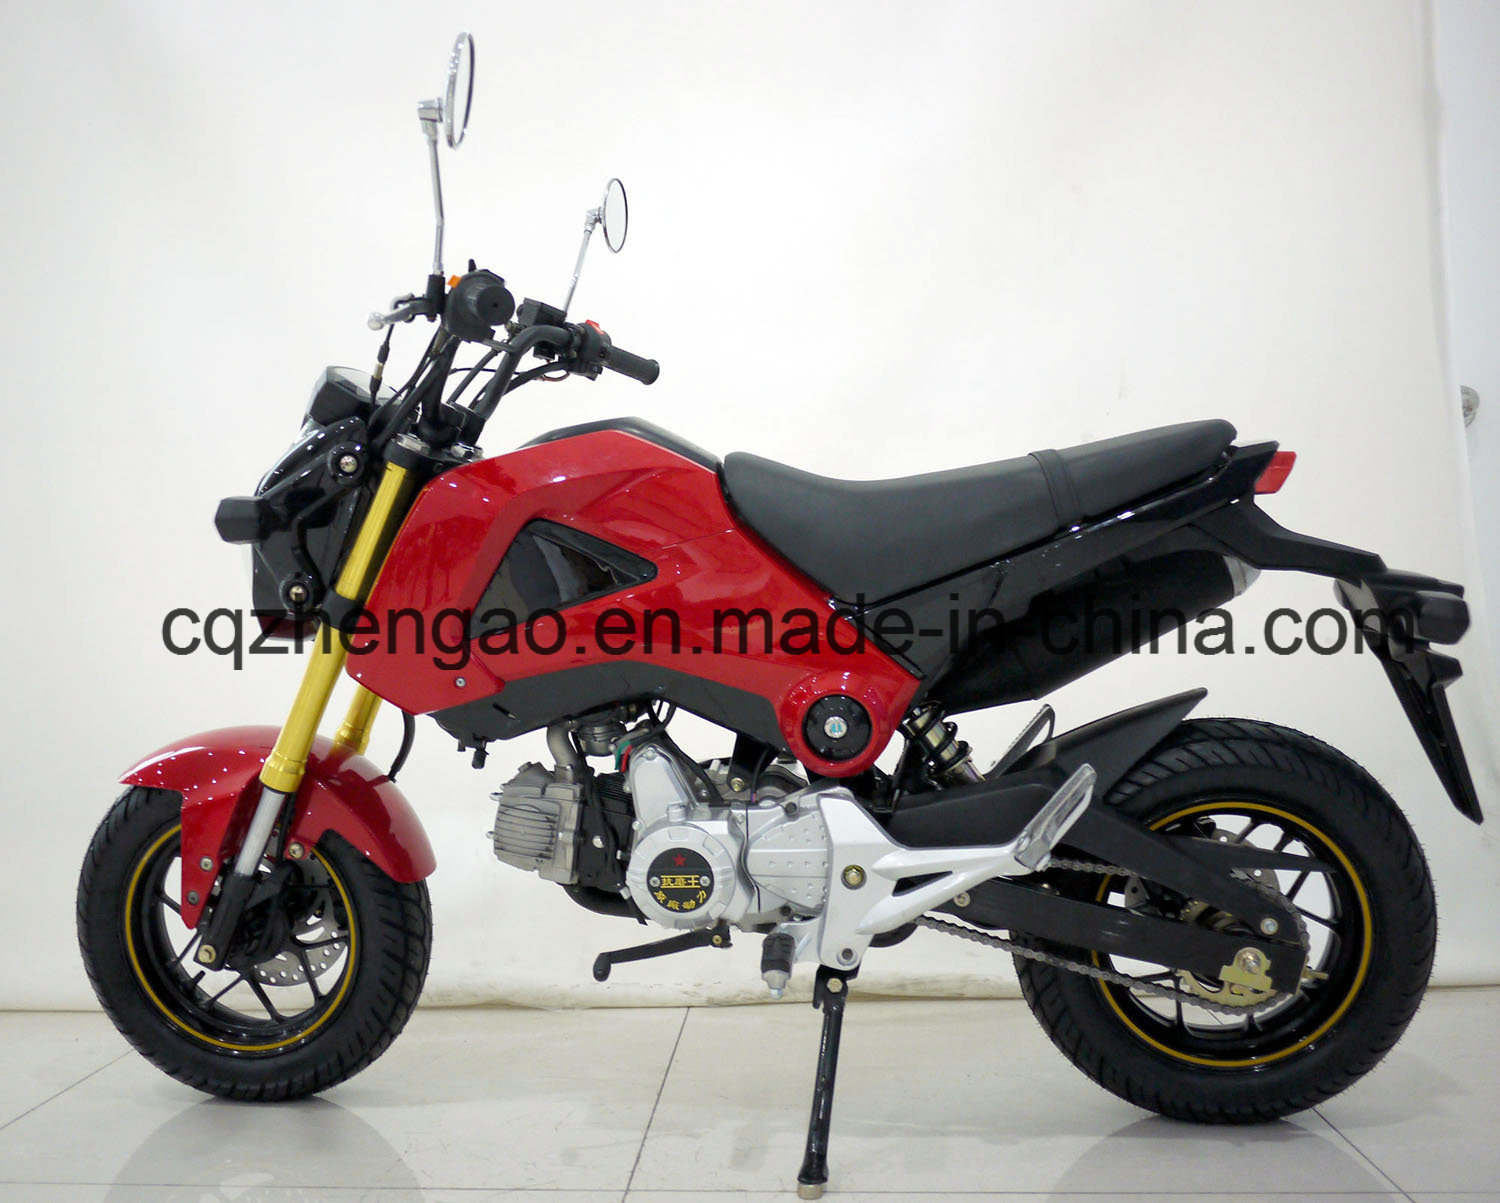 moto 125cc msx125 pour hot moto mini rue bike x treme. Black Bedroom Furniture Sets. Home Design Ideas